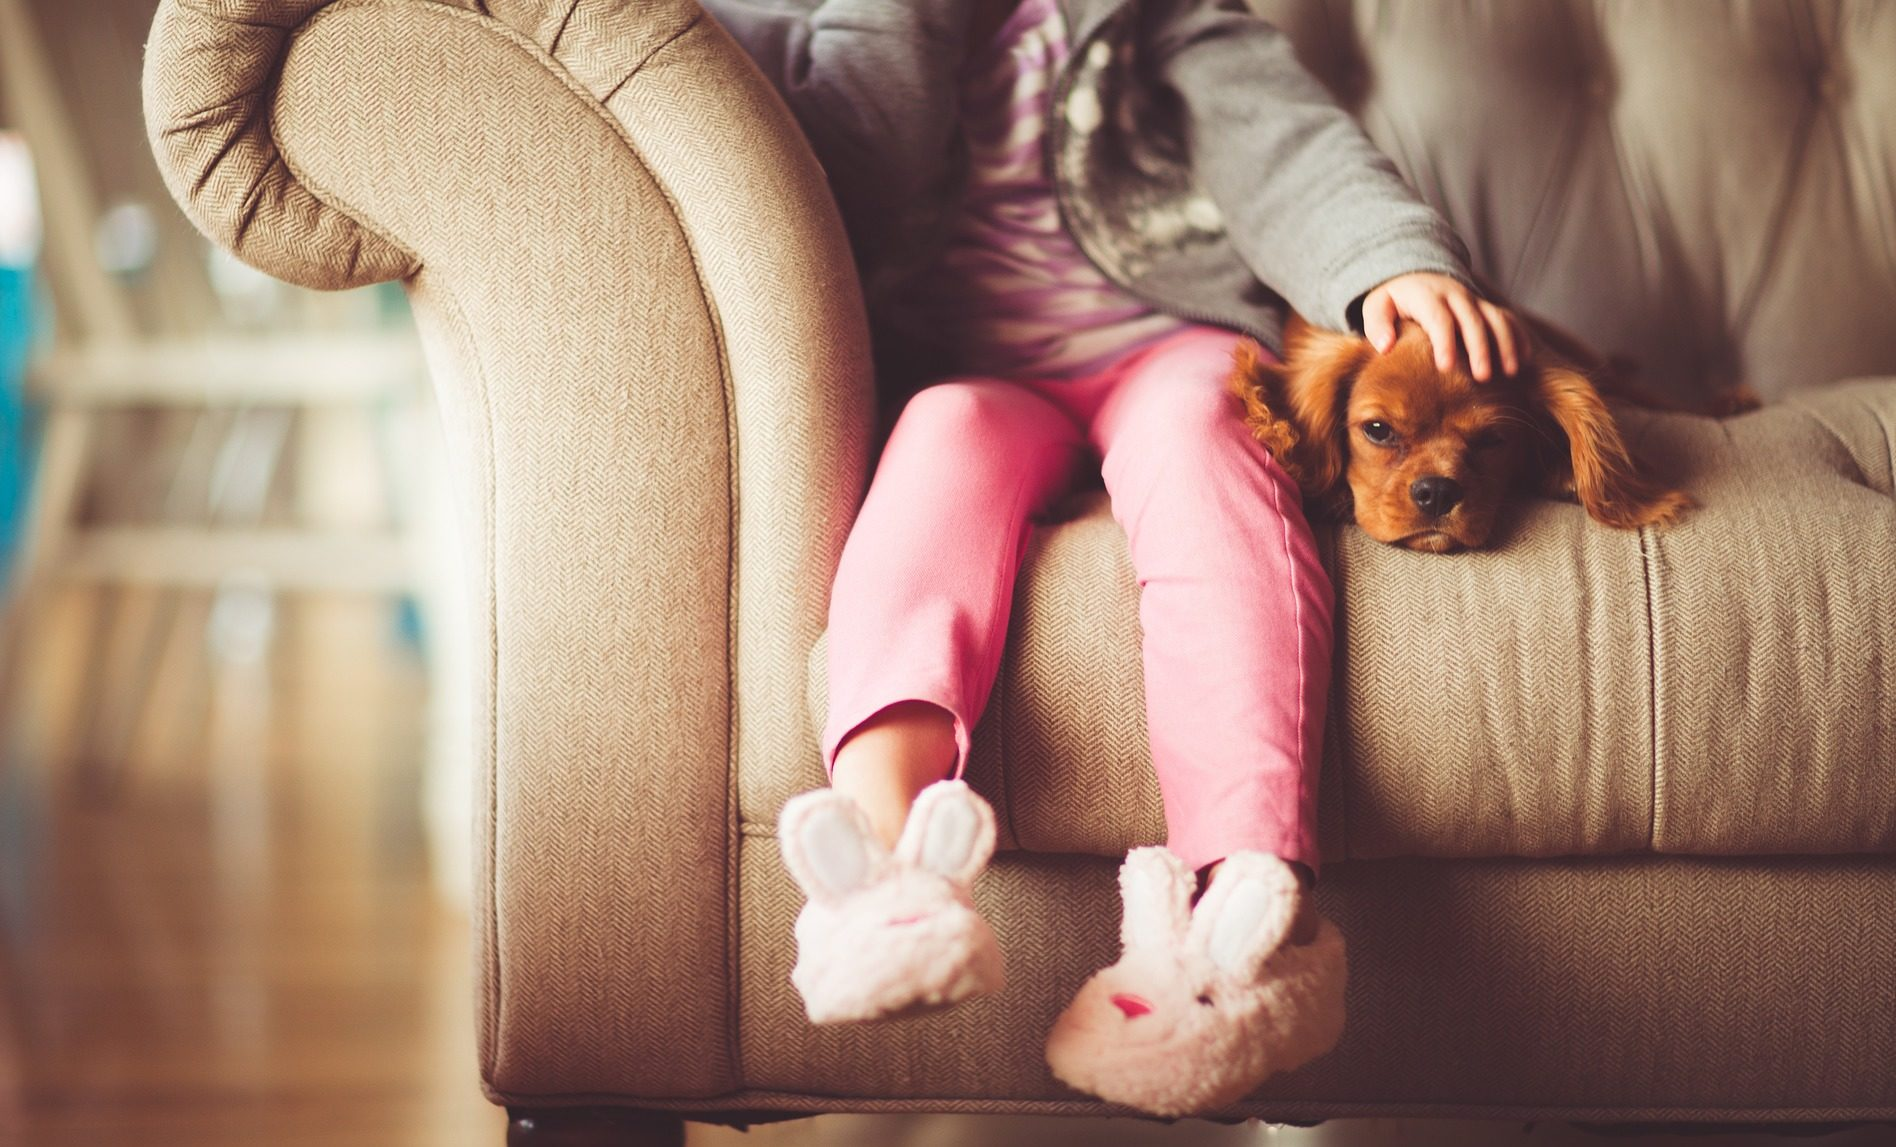 Photo of a girl wearing bunny slippers sitting on a couch with a Cavalier King Charles Spaniel puppy.